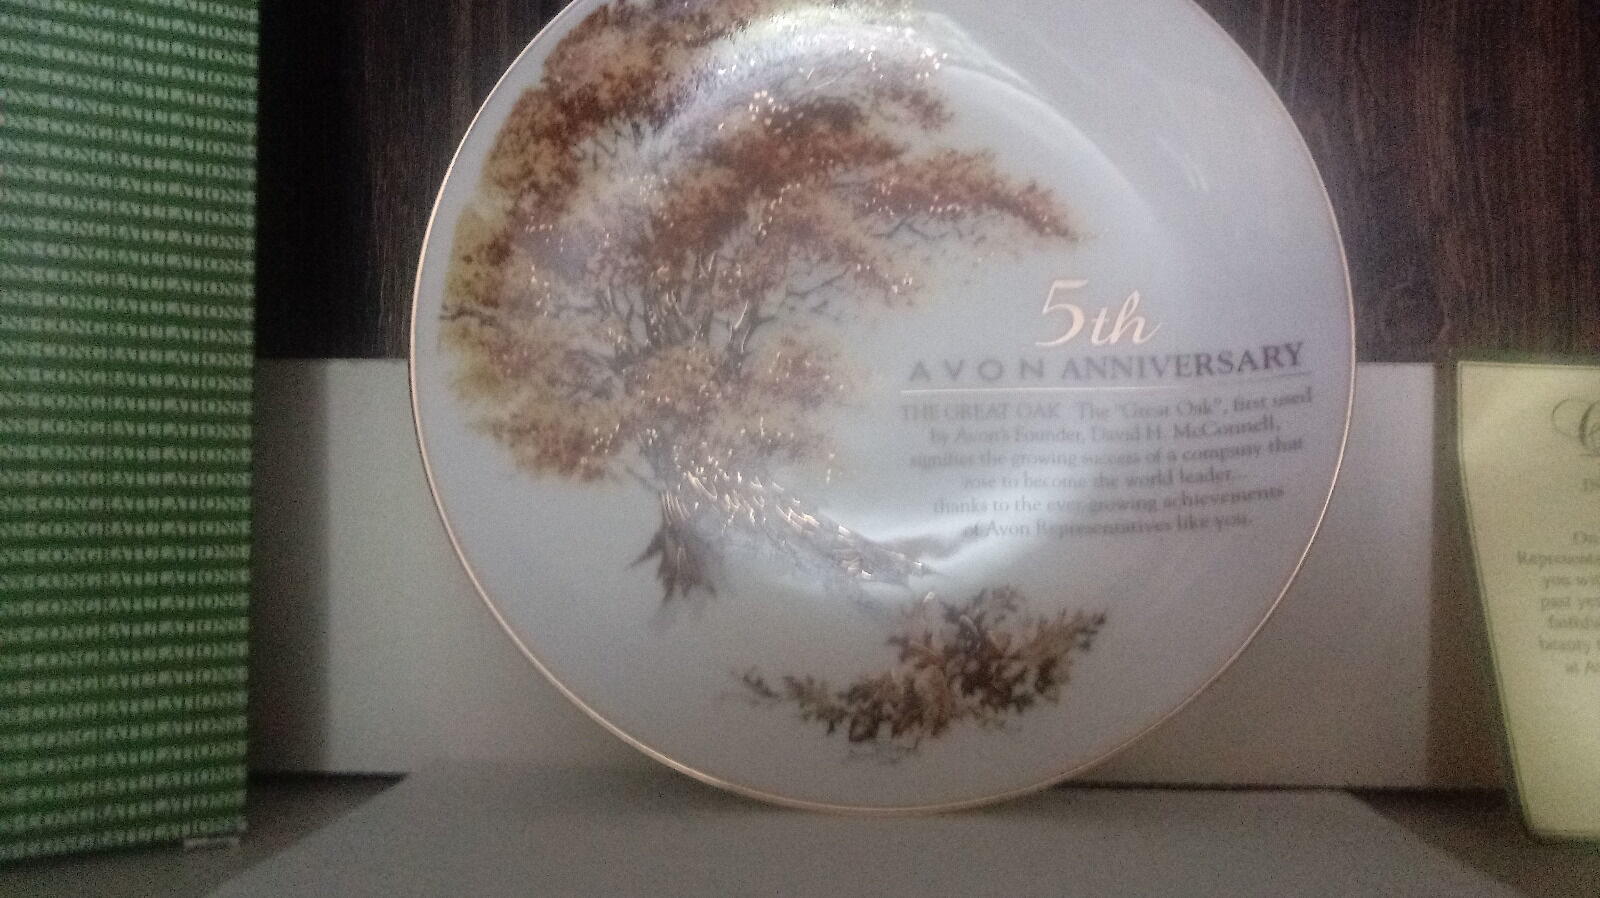 VINTAGE AVON 5TH ANNIVERSARY PLATE THE GREAT OAK 22K GOLD TRIM